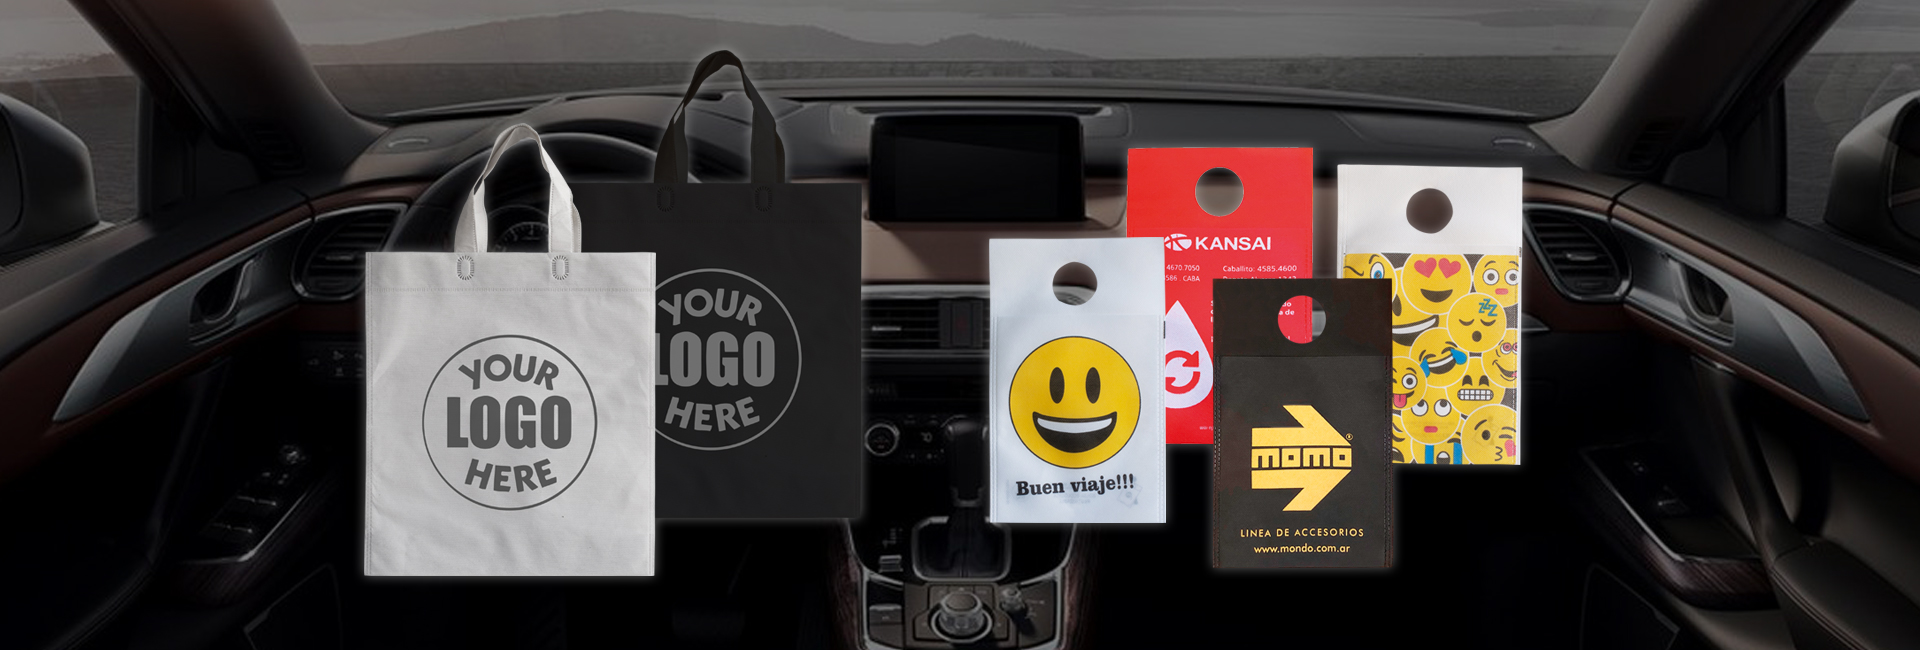 http://Eco-Friendly%20Trash%20Bags%20for%20Vehicles